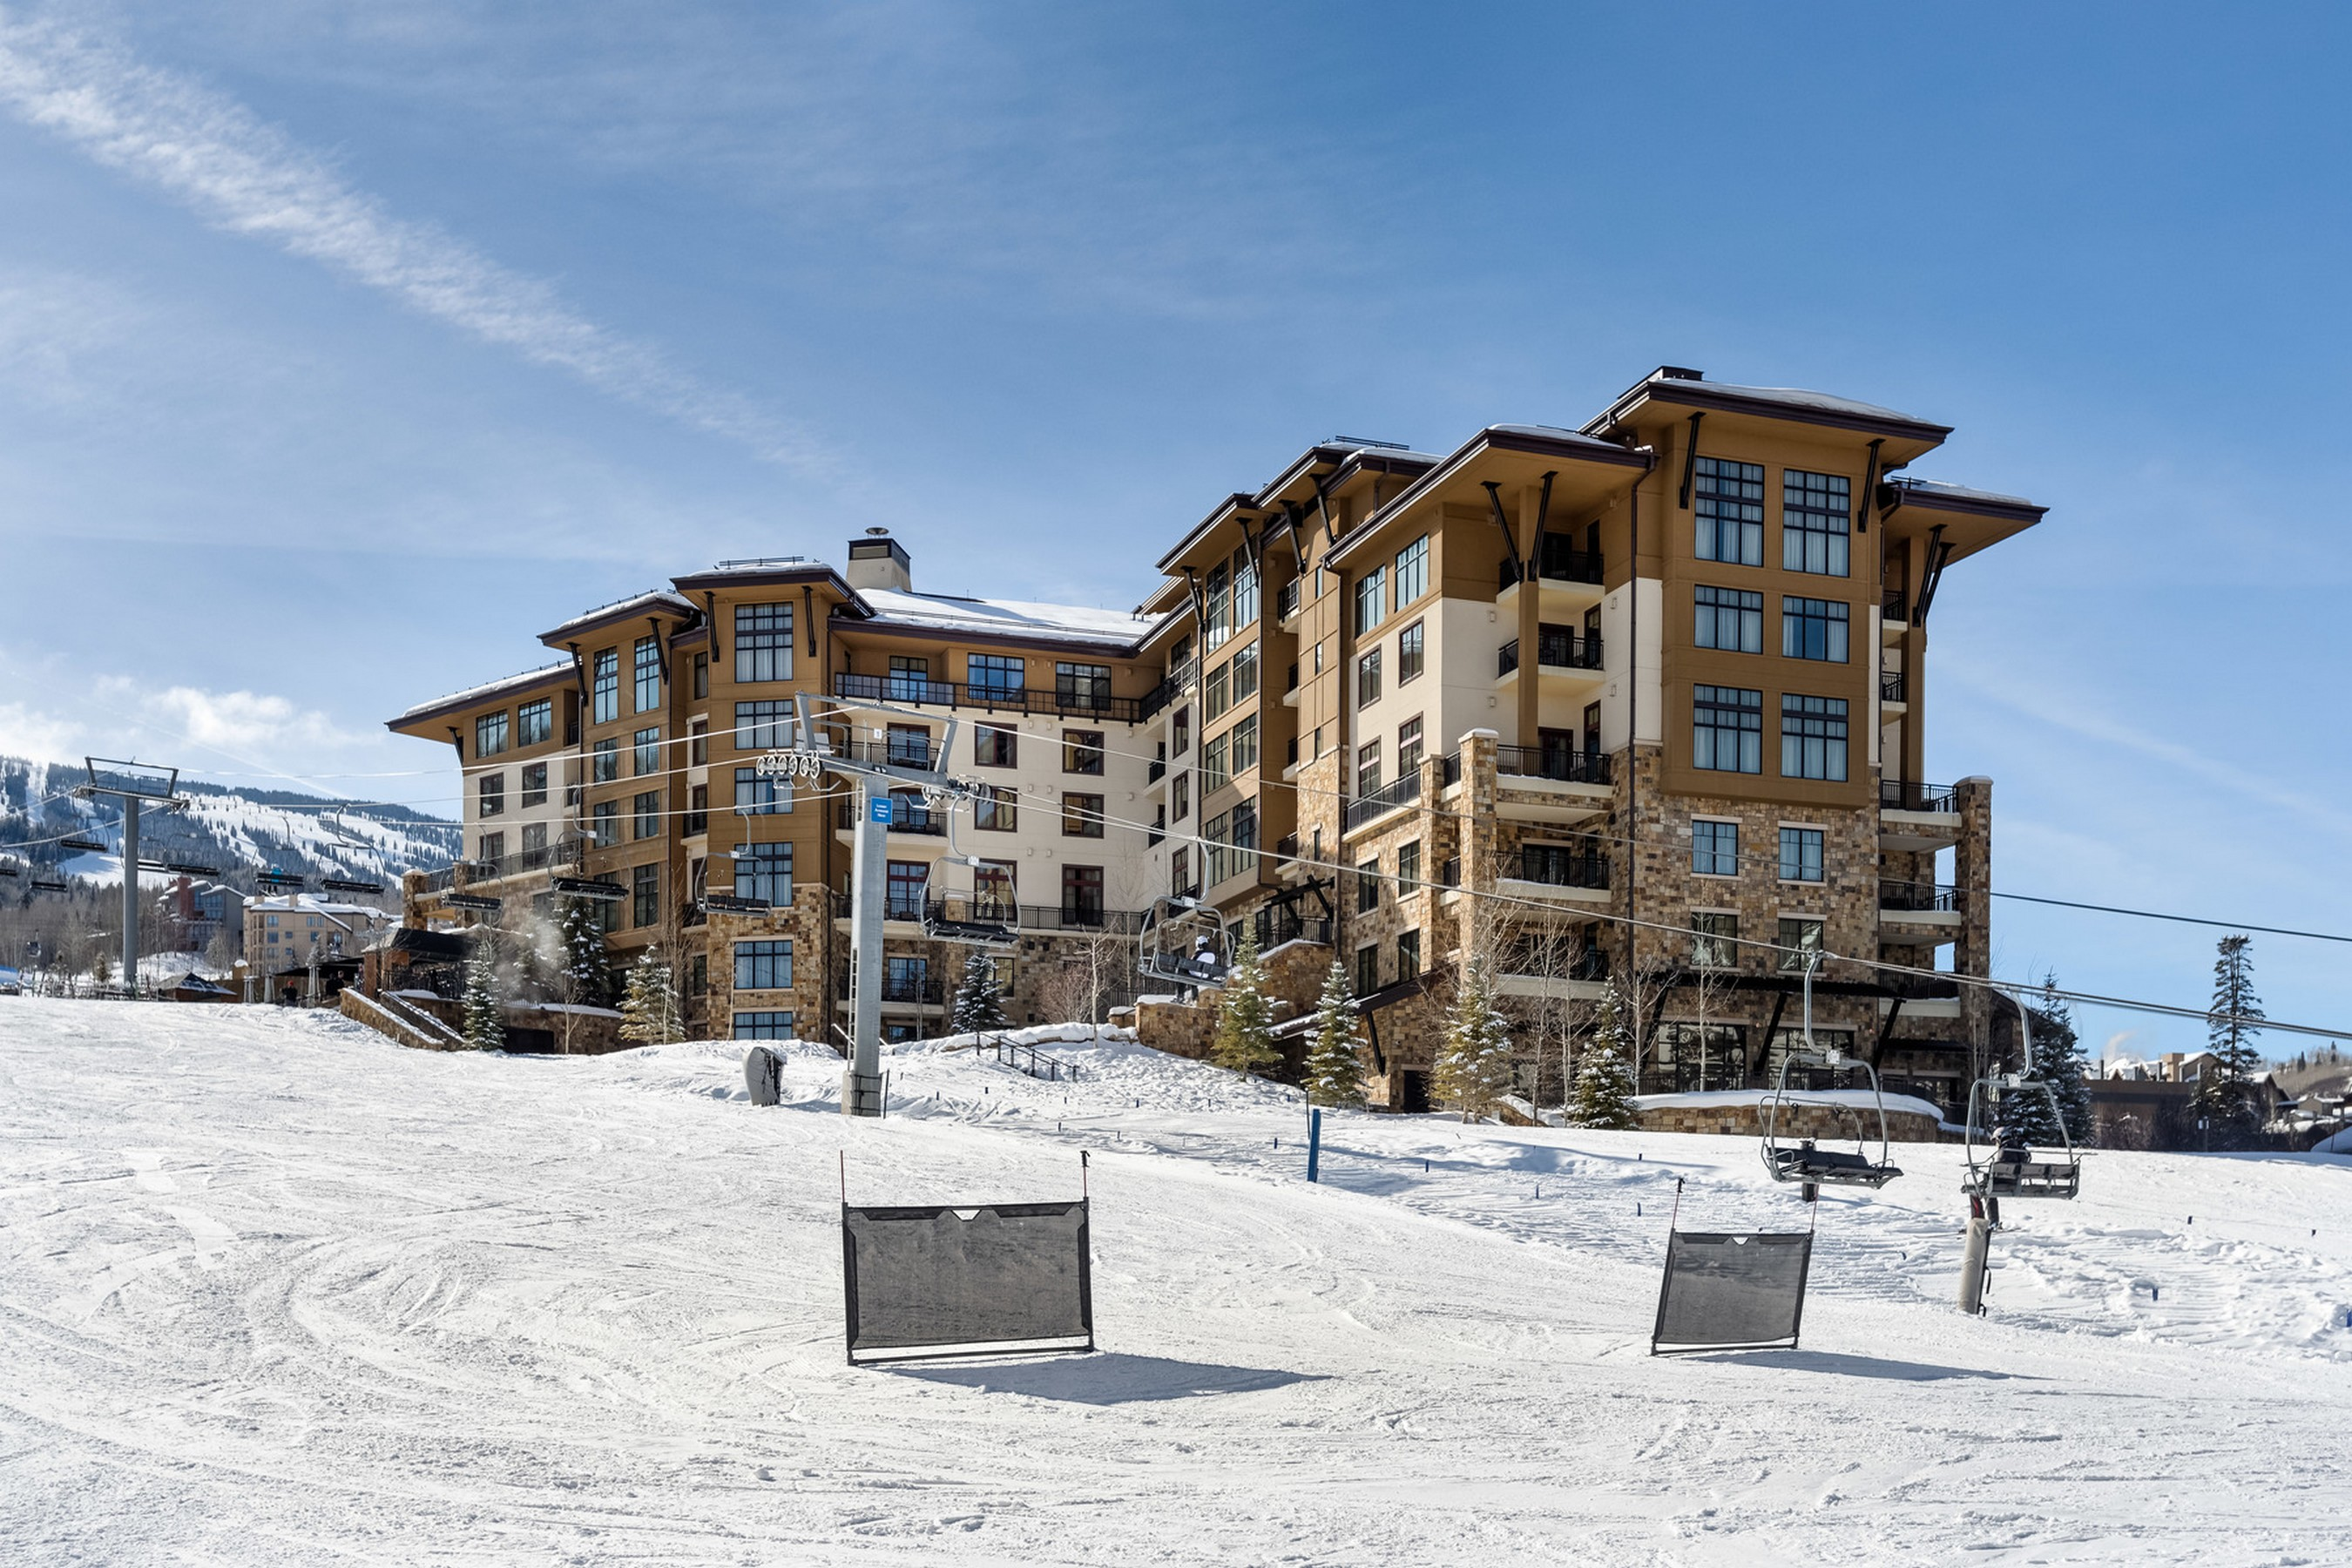 130 Wood Road, unit 214 Snowmass Village Photo 31